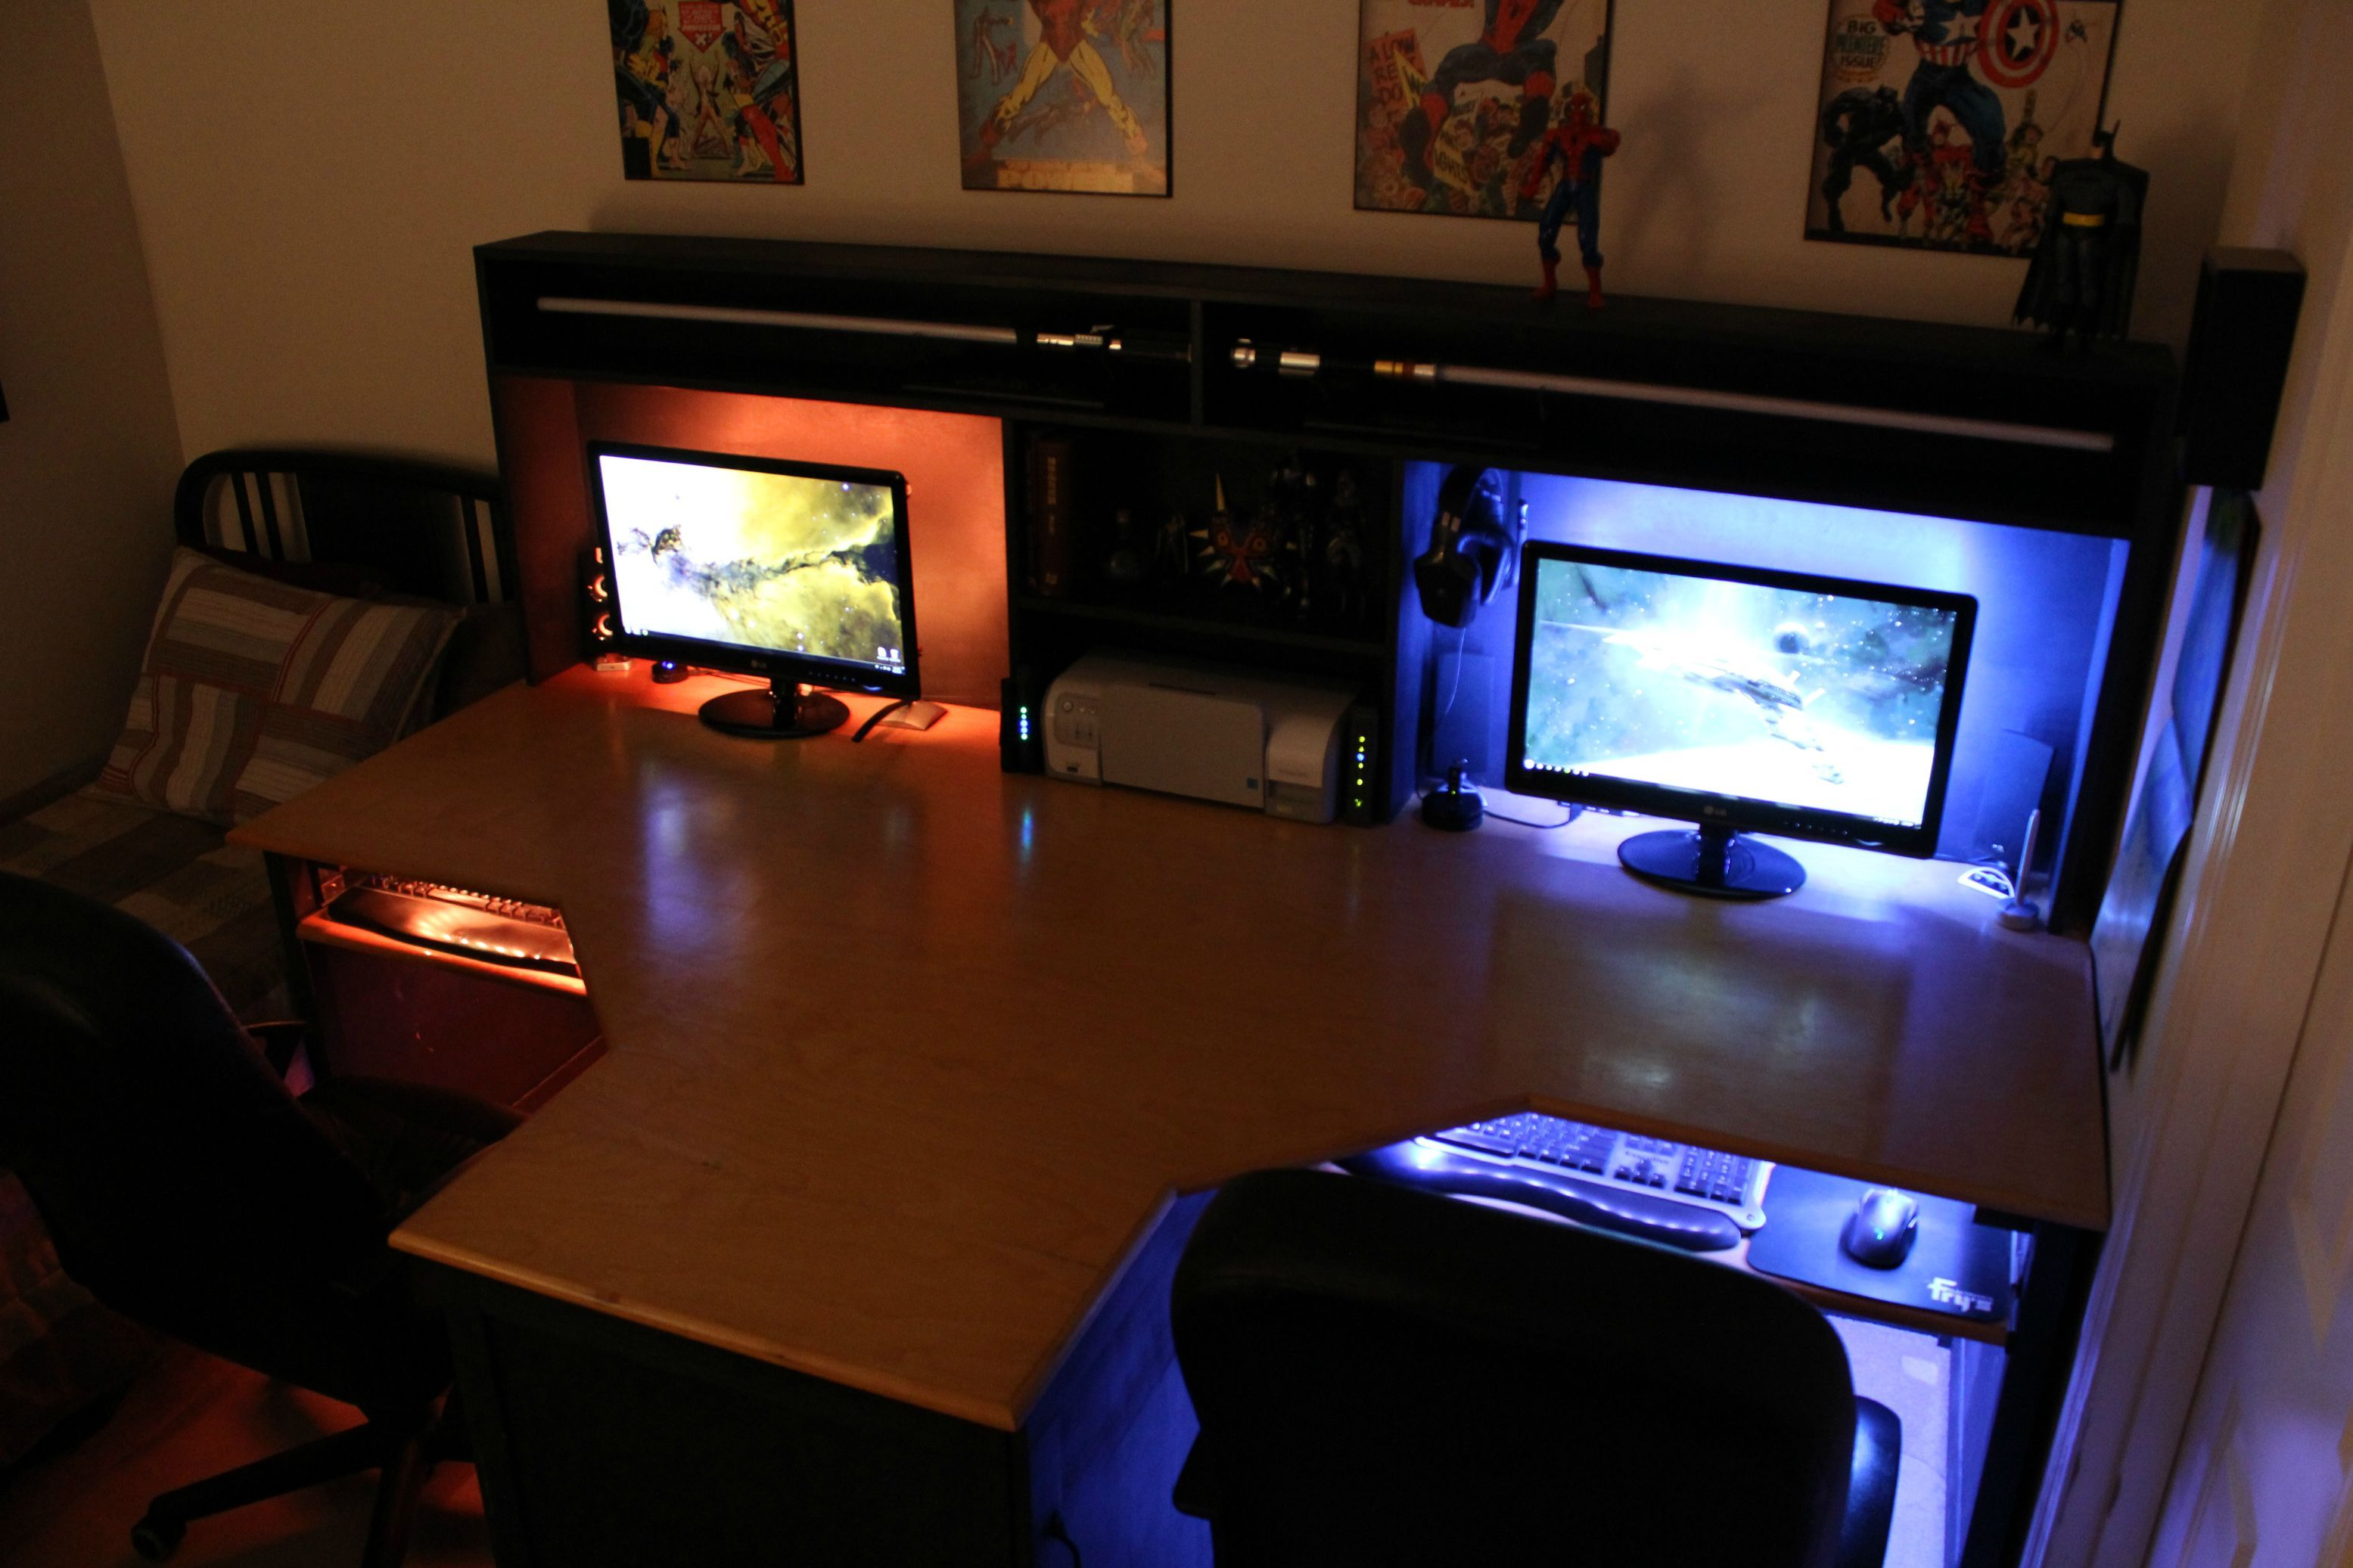 Cool computer setups and gaming setups another good idea How to make a gaming setup in your room